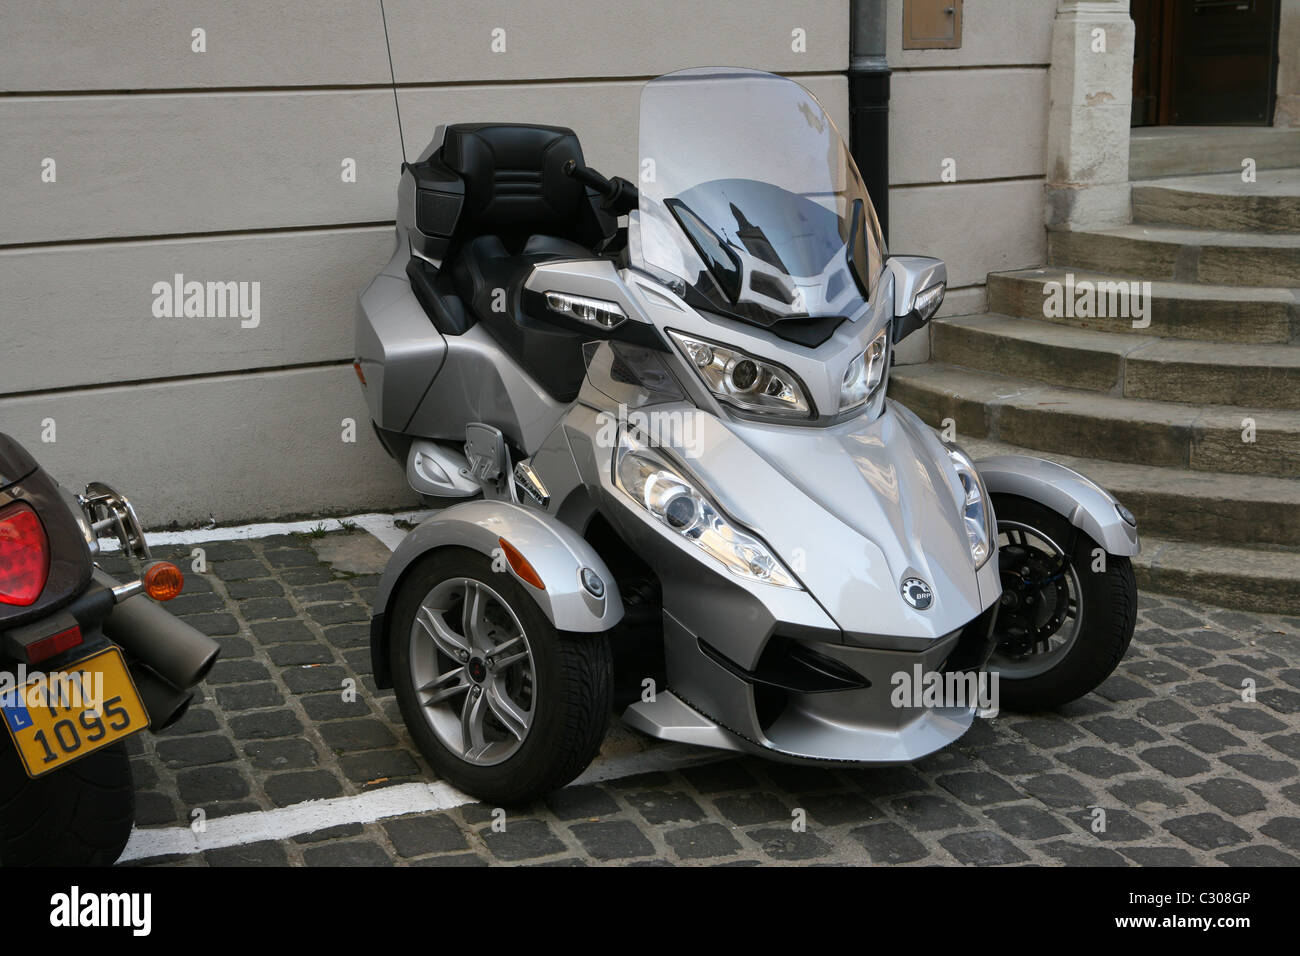 bombardier recreational products brp can am spyder rt touring trike stock photo 36271446 alamy. Black Bedroom Furniture Sets. Home Design Ideas